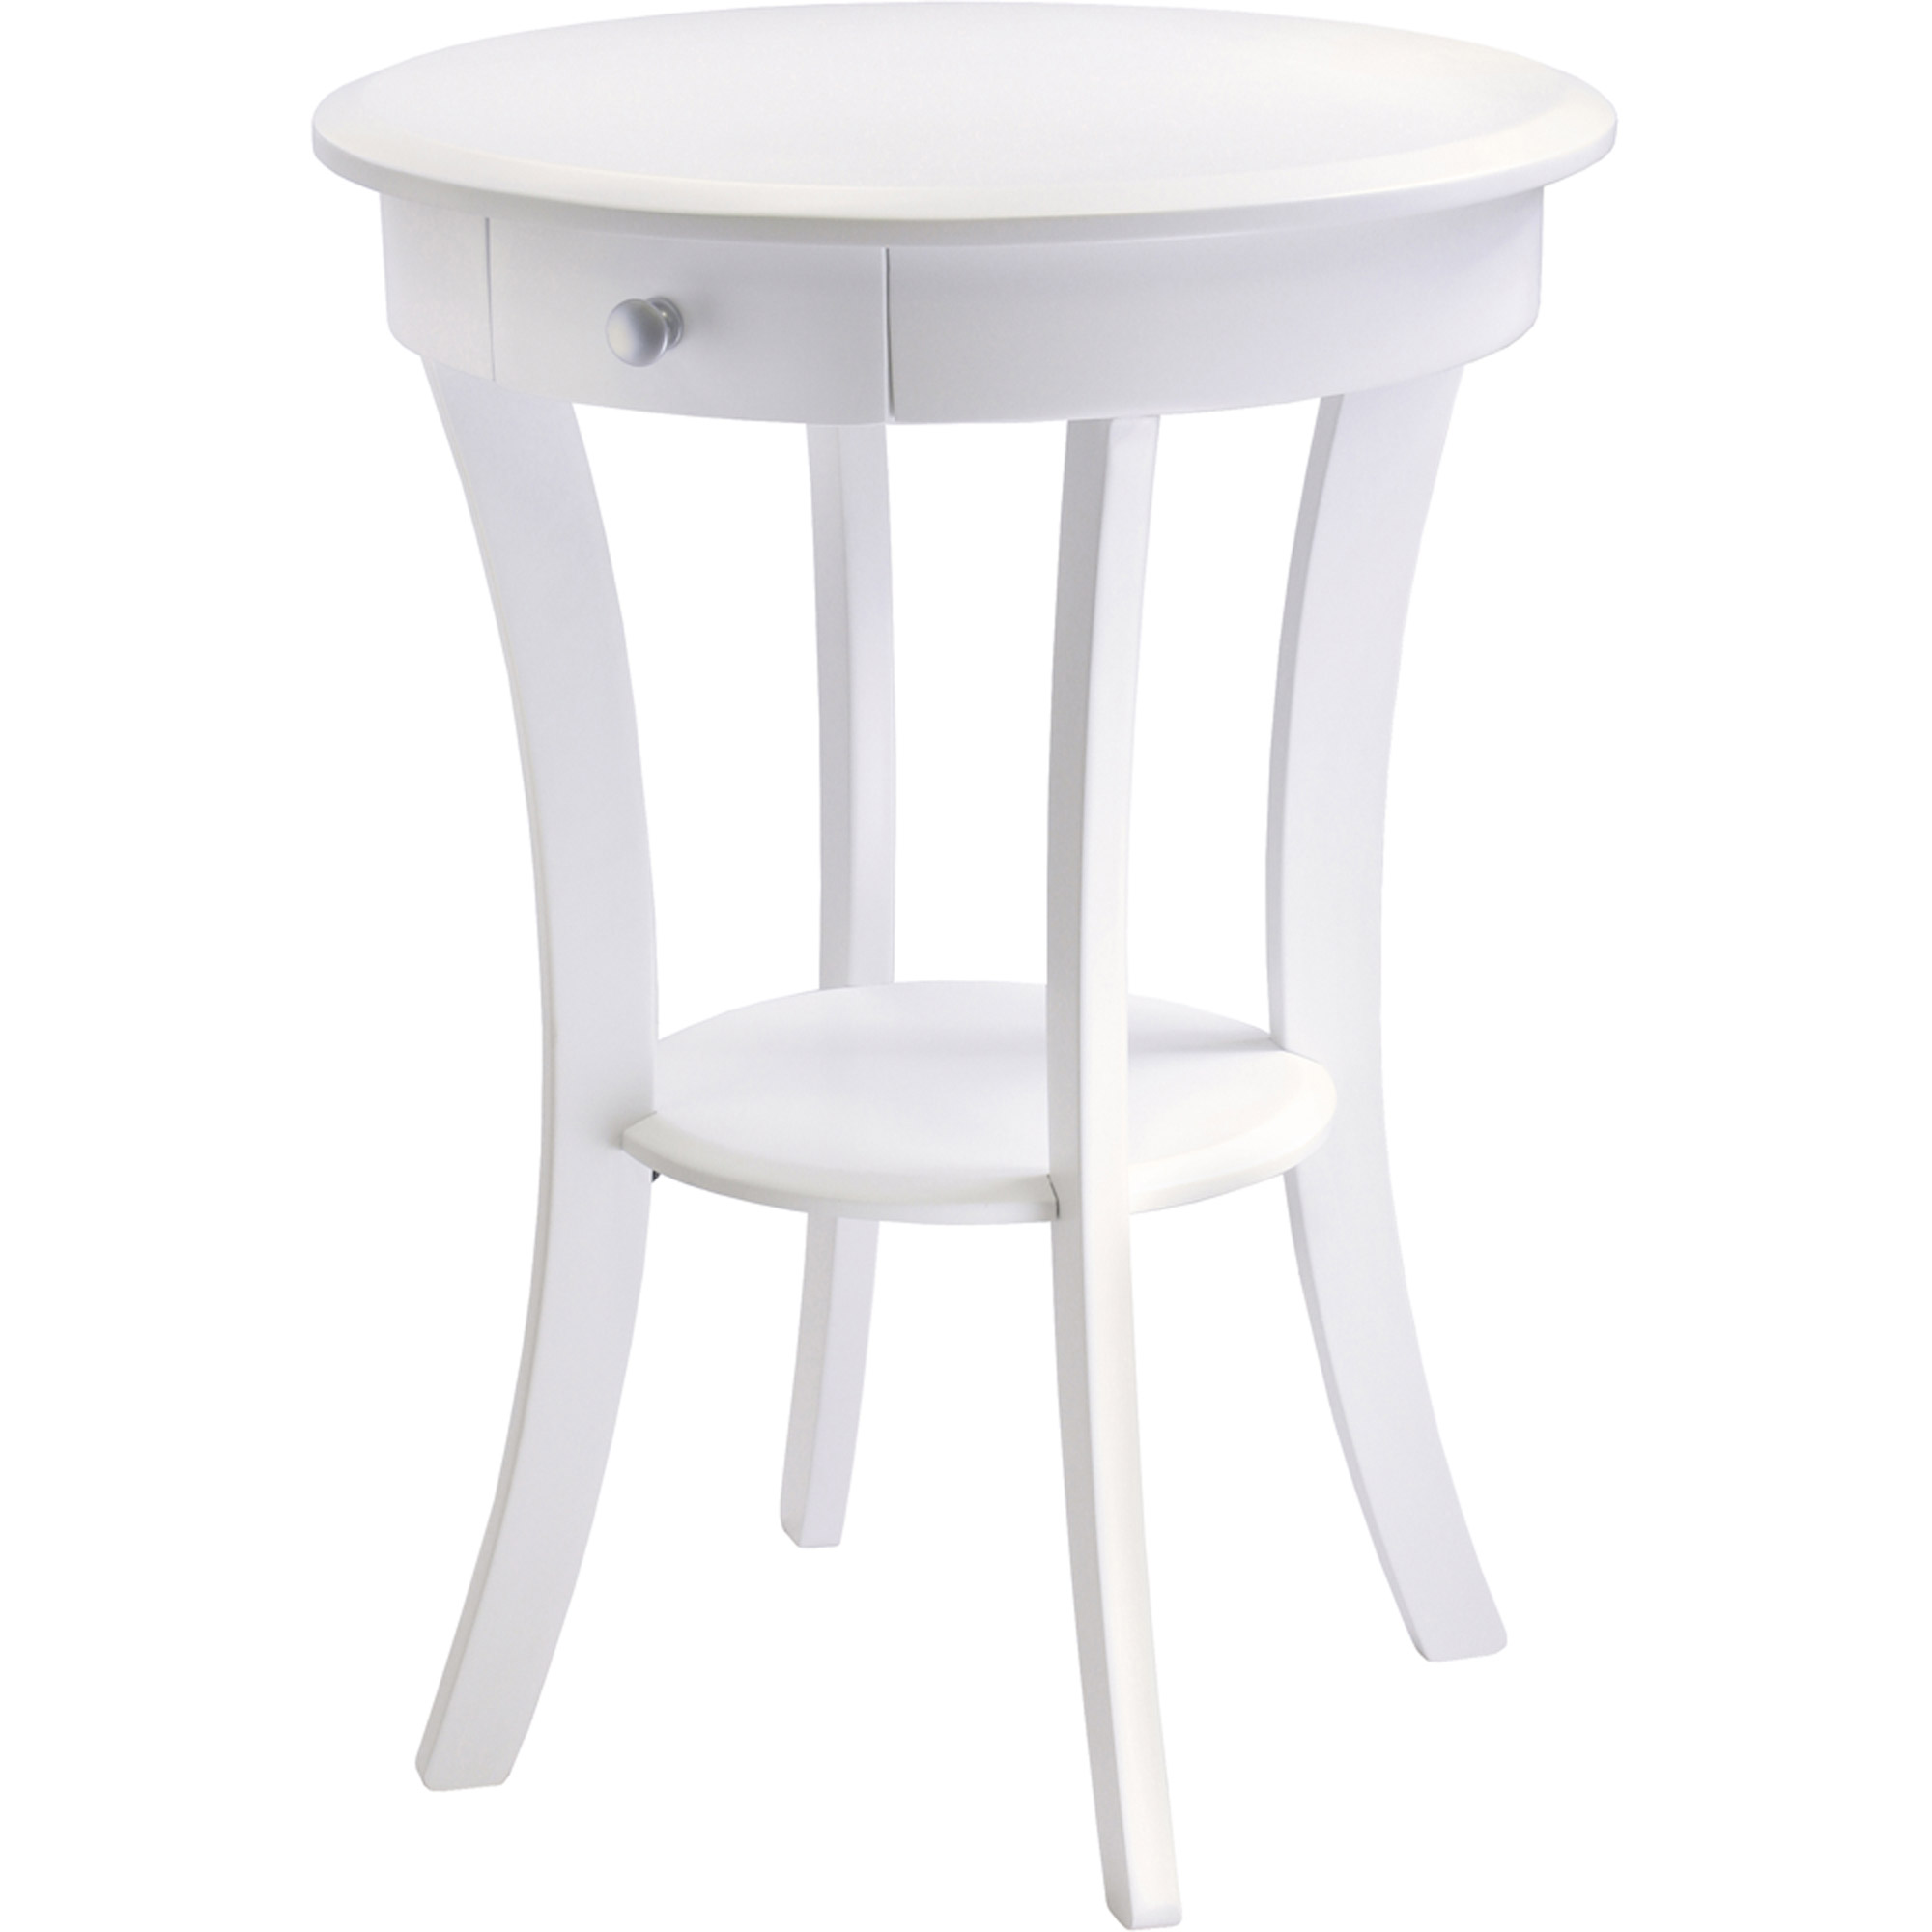 lift top table probably fantastic awesome country white end tables winsome sasha round accent stock multiple colors outdoor electric heater mirror glass kmart kitchen ikea storage